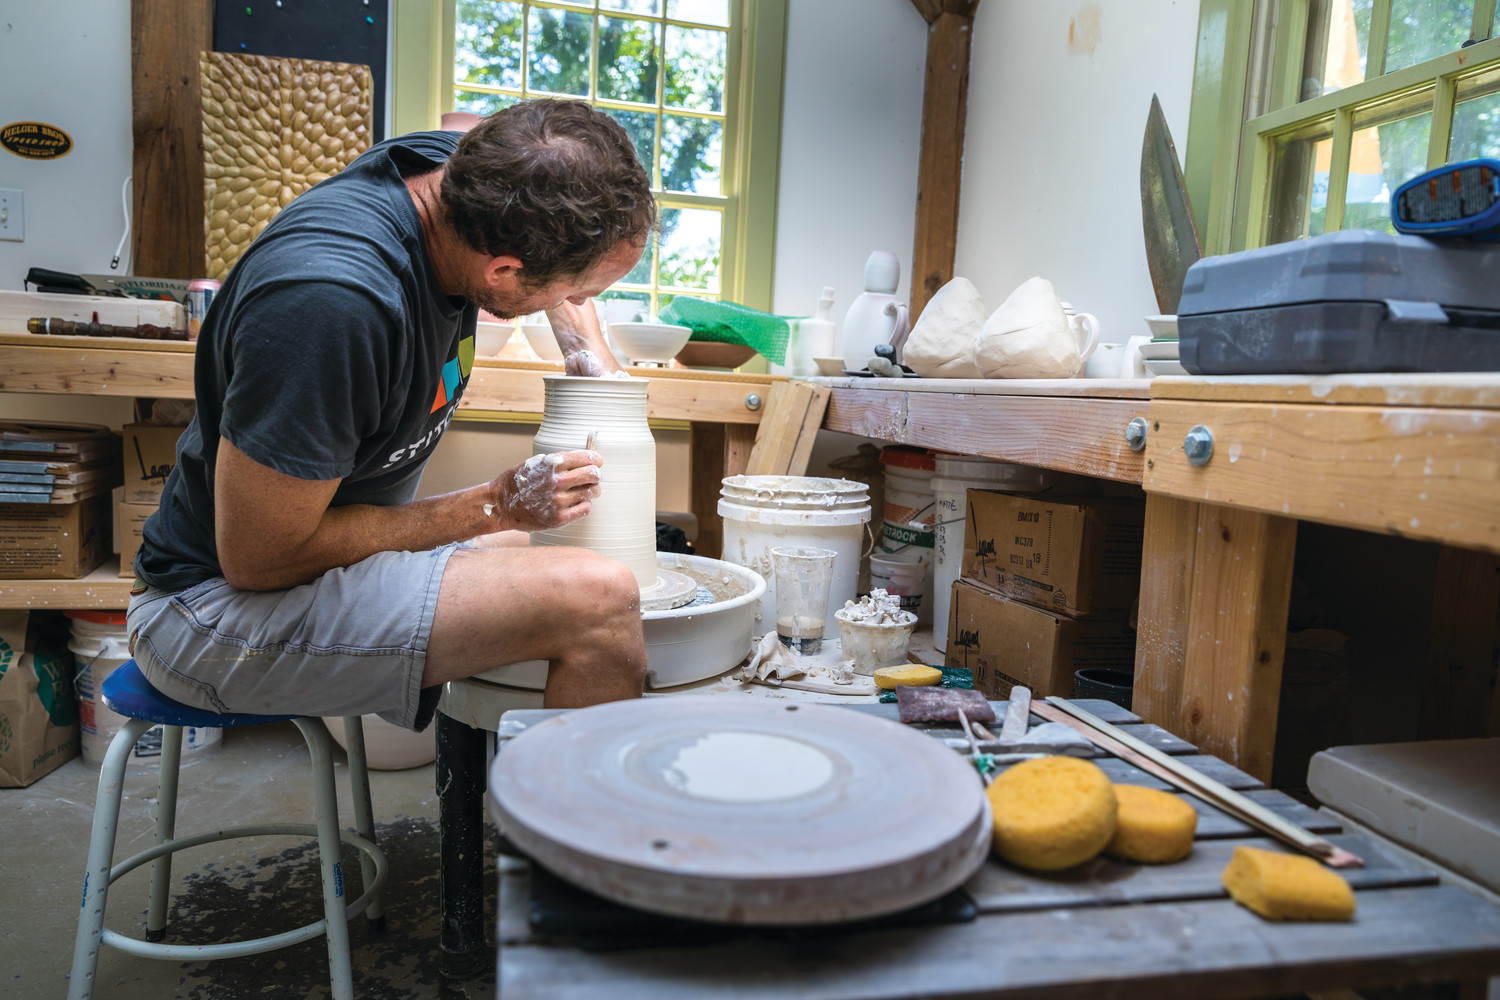 Charlie Barmonde of Arch Contemporary Ceramics creates his prolific works of pottery in his Tiverton studio.